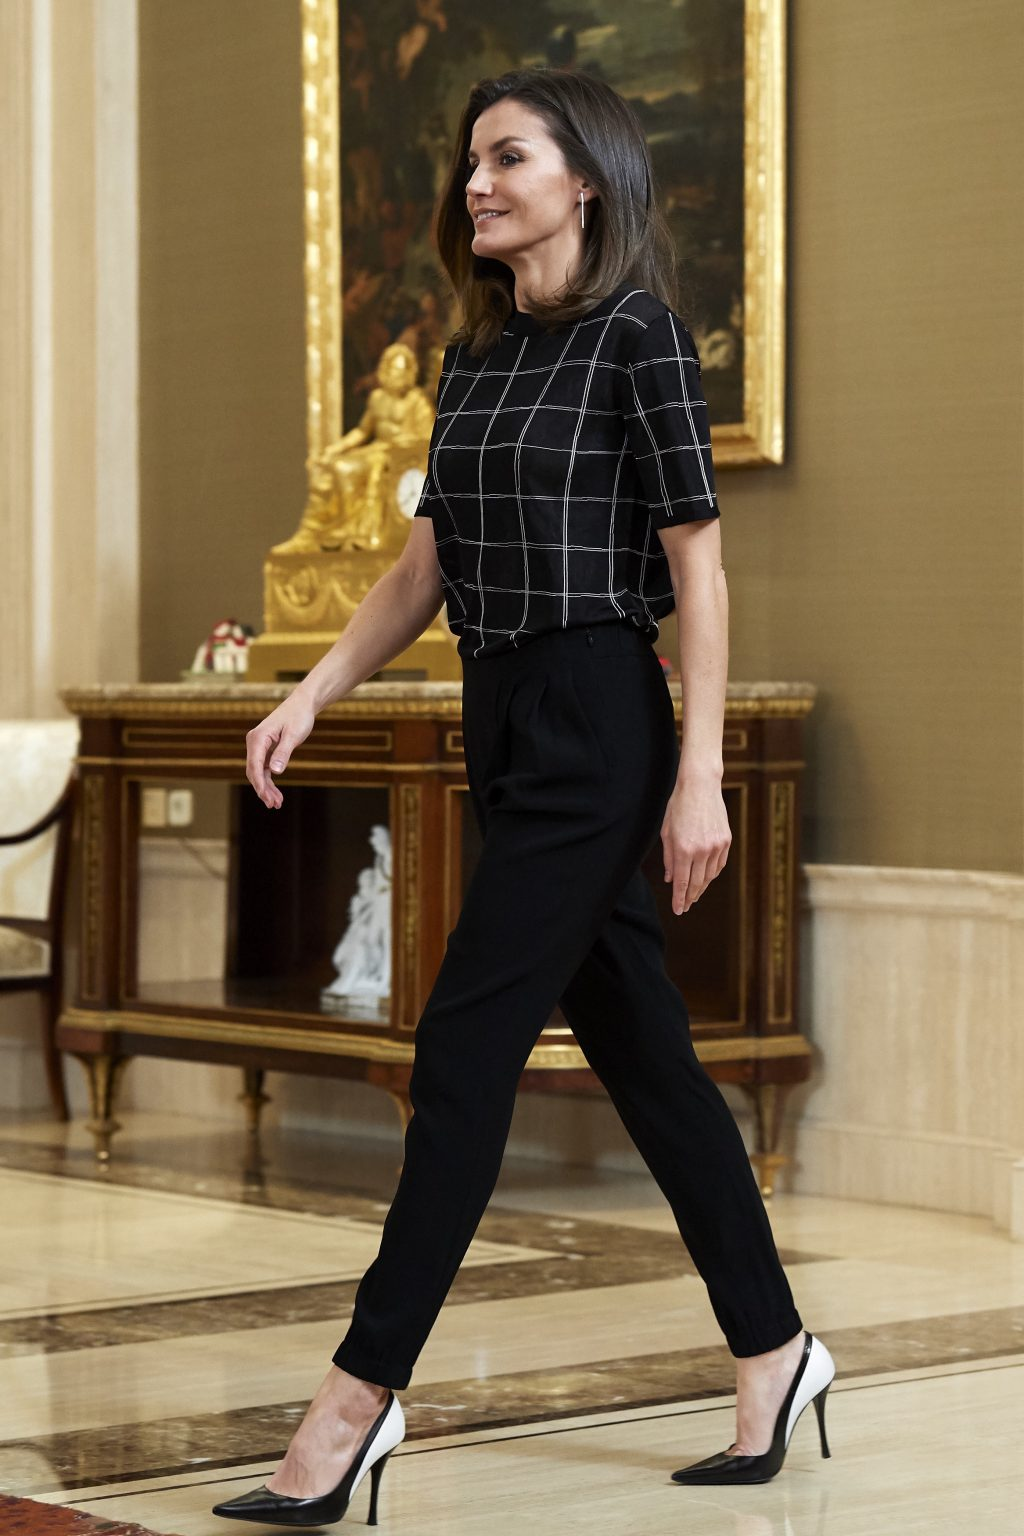 Why Queen Letizia's Latest Look Is More Boss than Royal